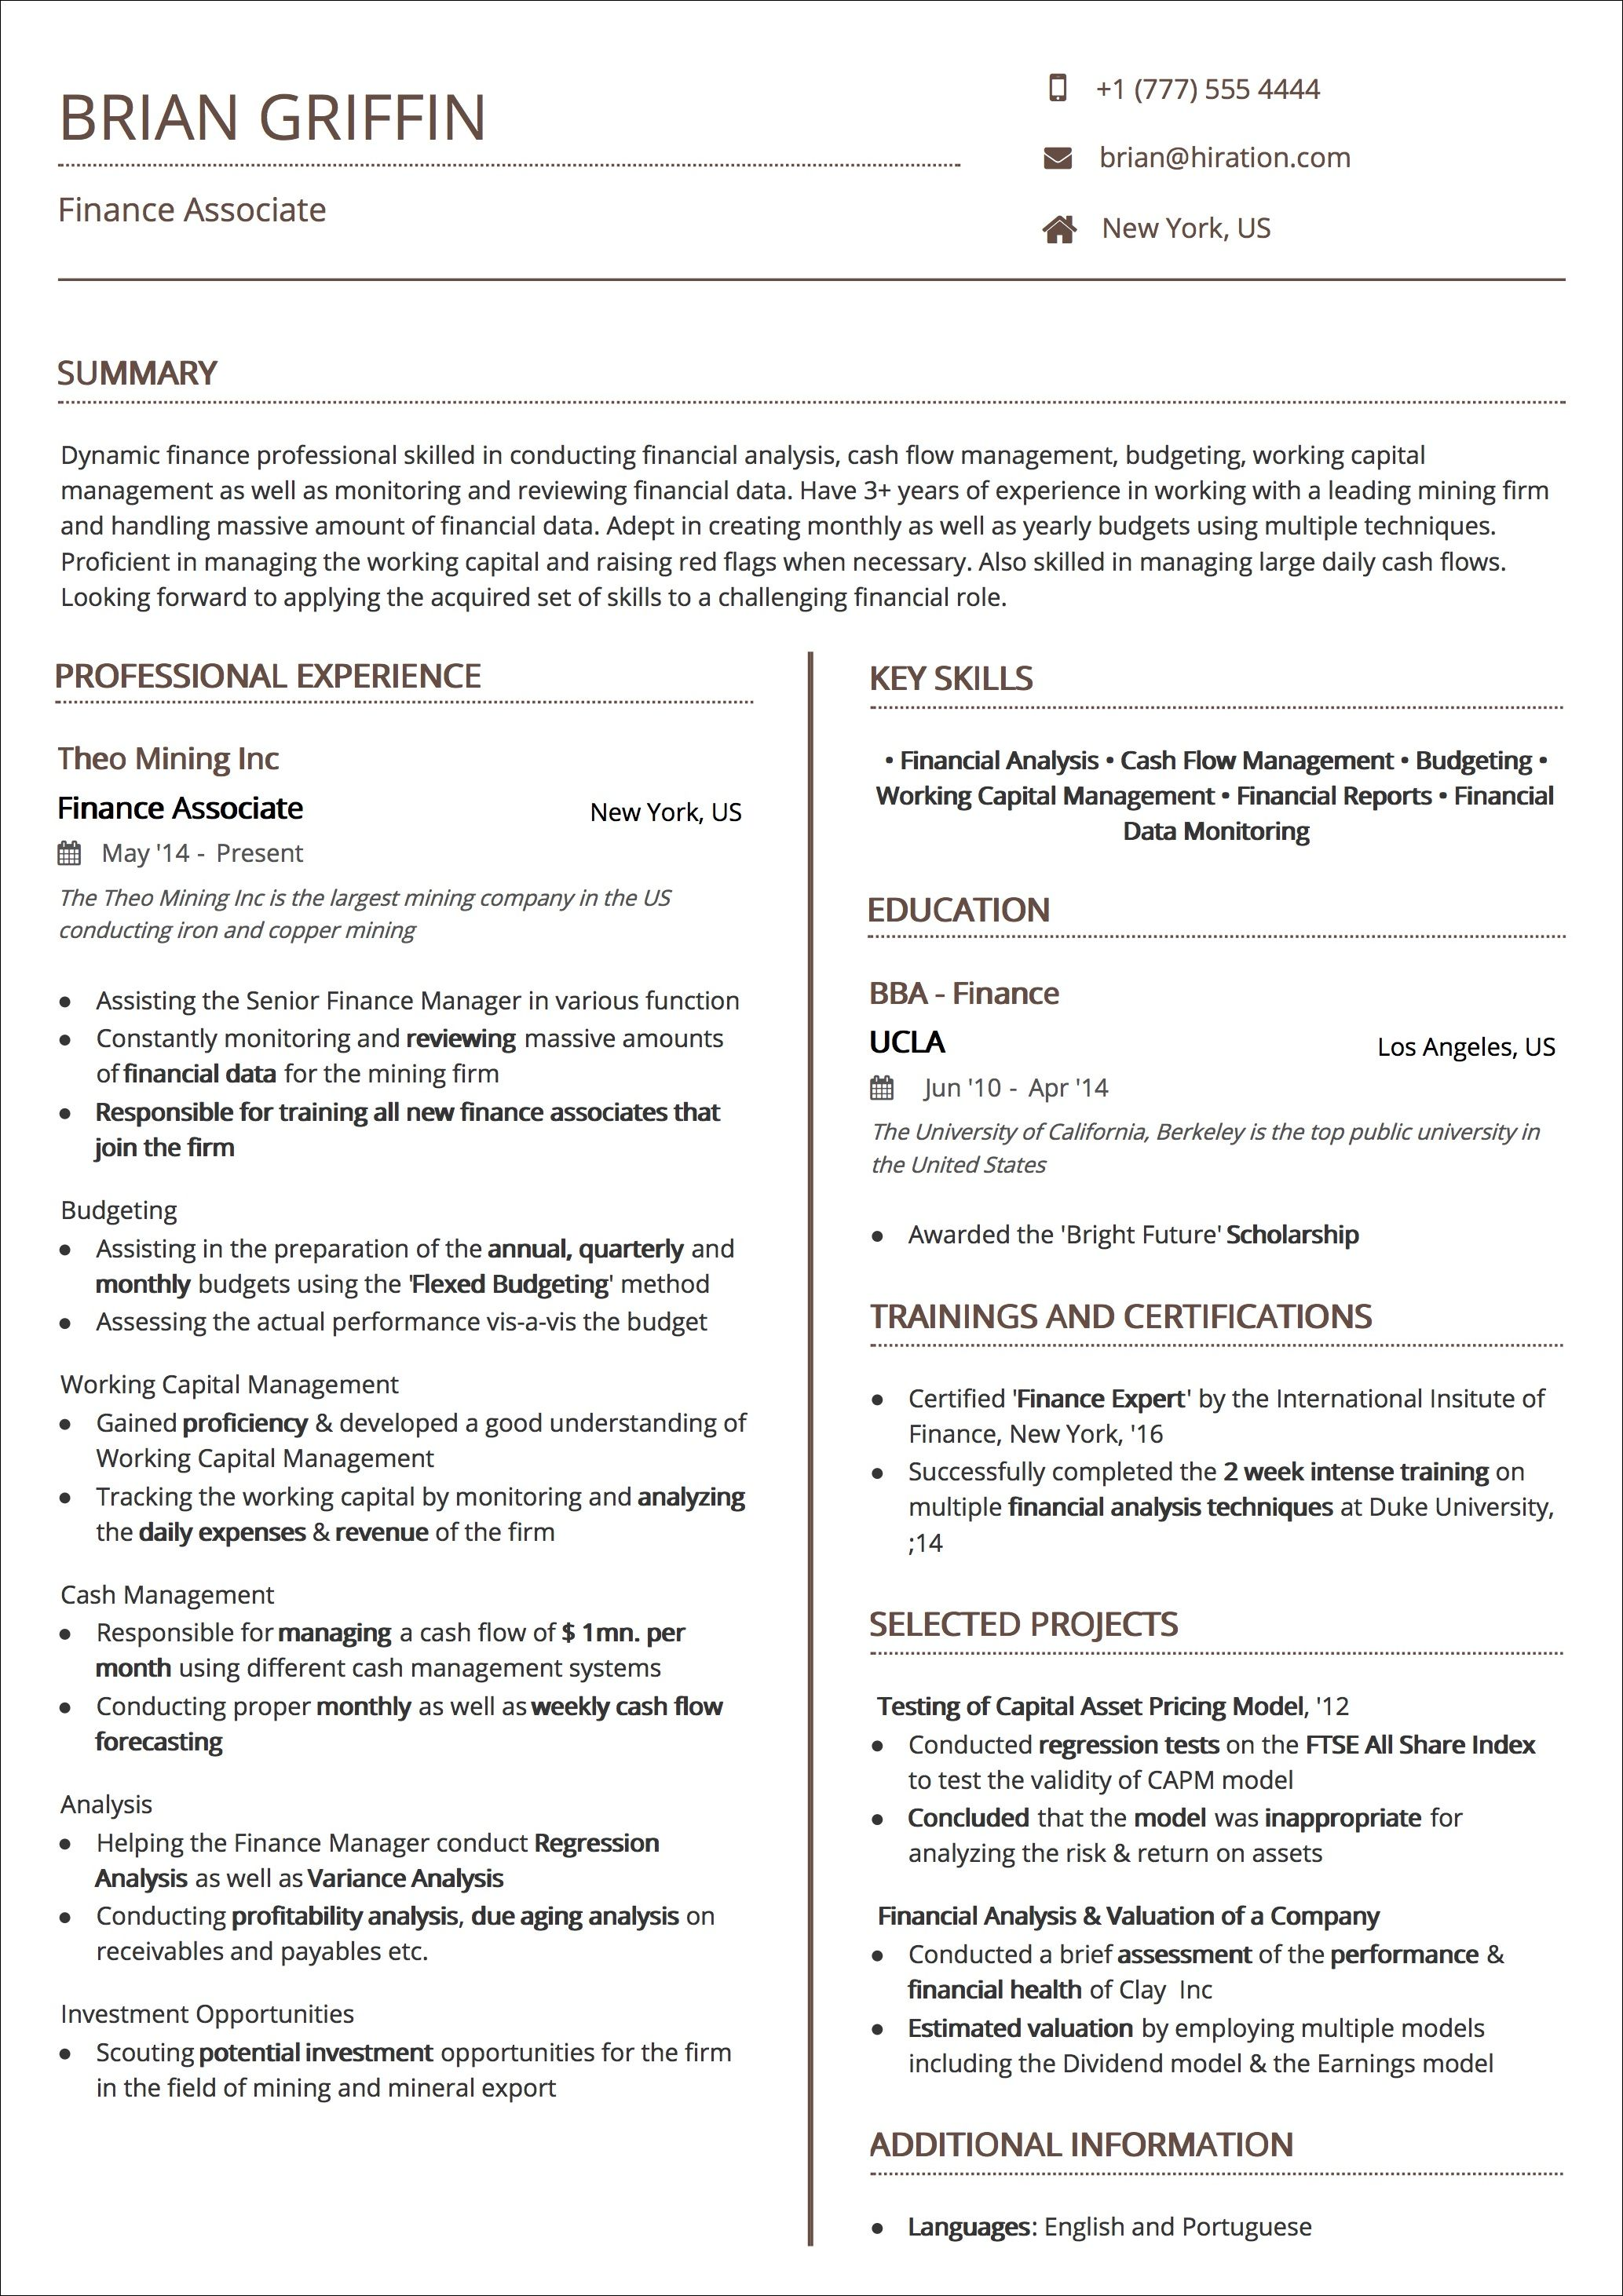 Resume Templates The 2020 Guide To Choosing The Best Resume Template